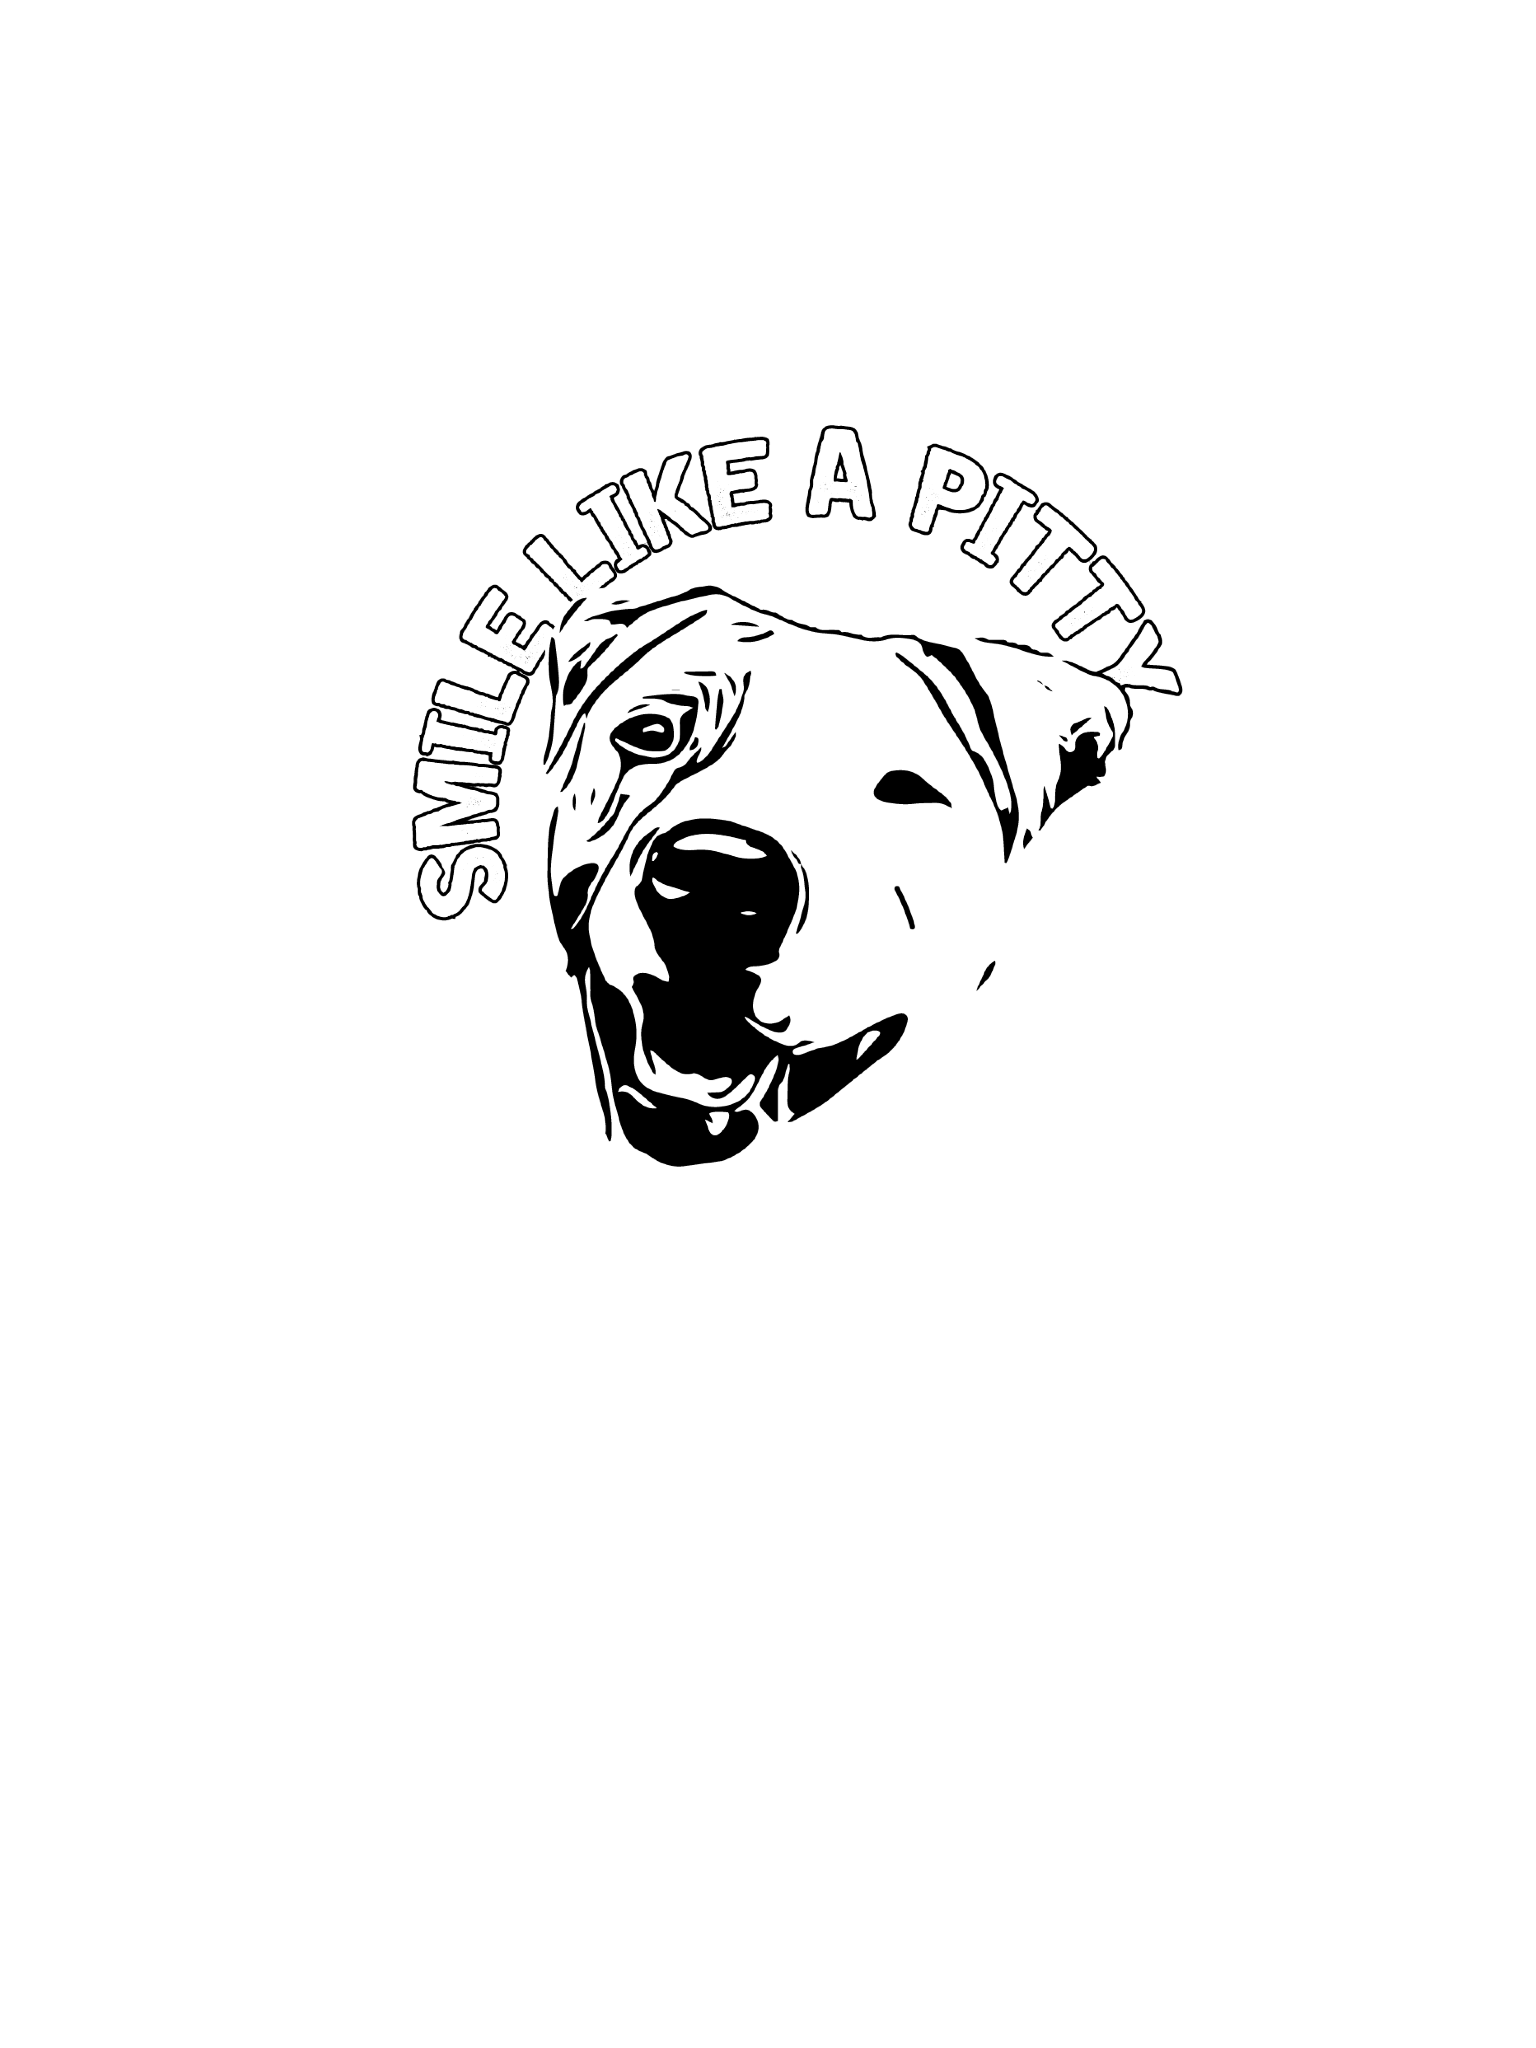 SMILE LIKE A PITTY